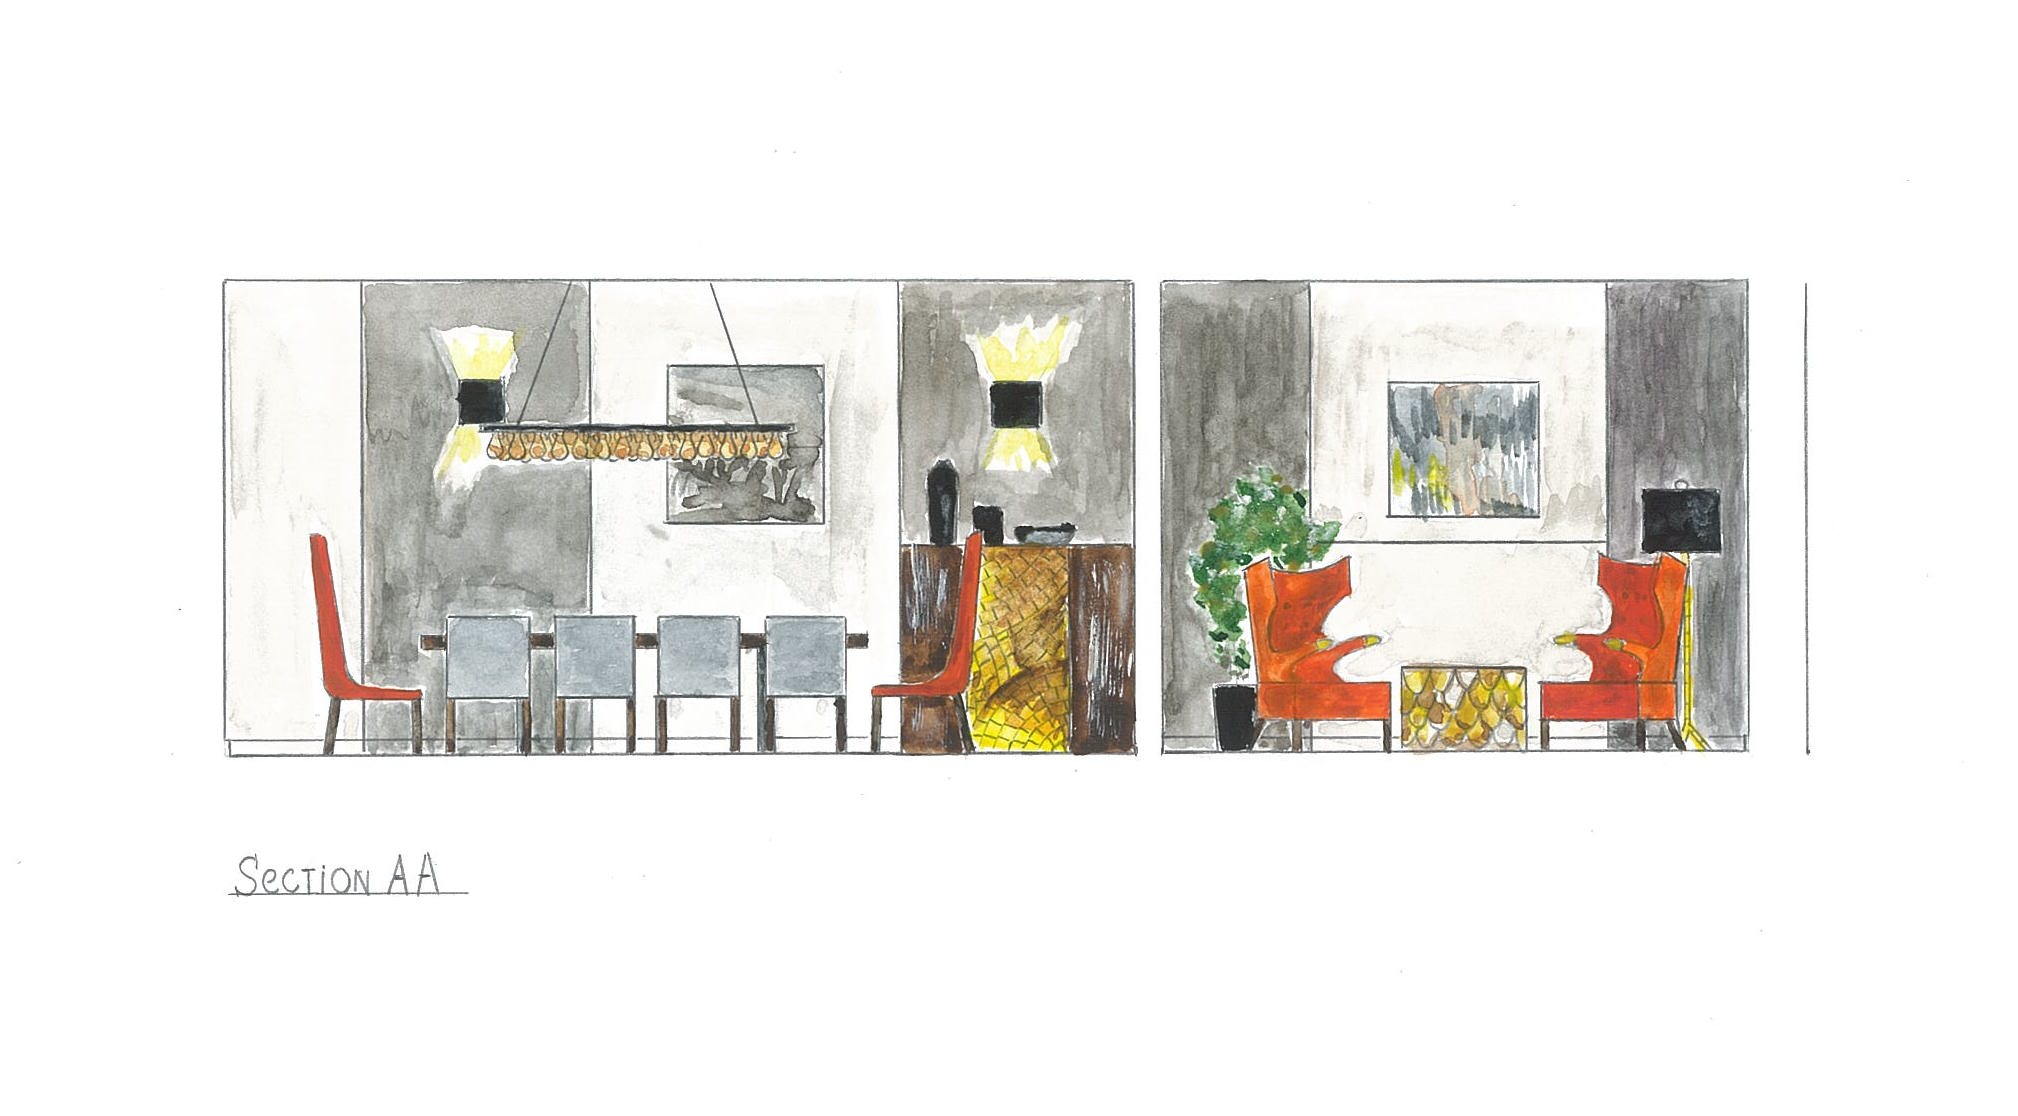 working as an interior designer check out my ebooks the first one is about history of interior styles second one is about marketing your interior design